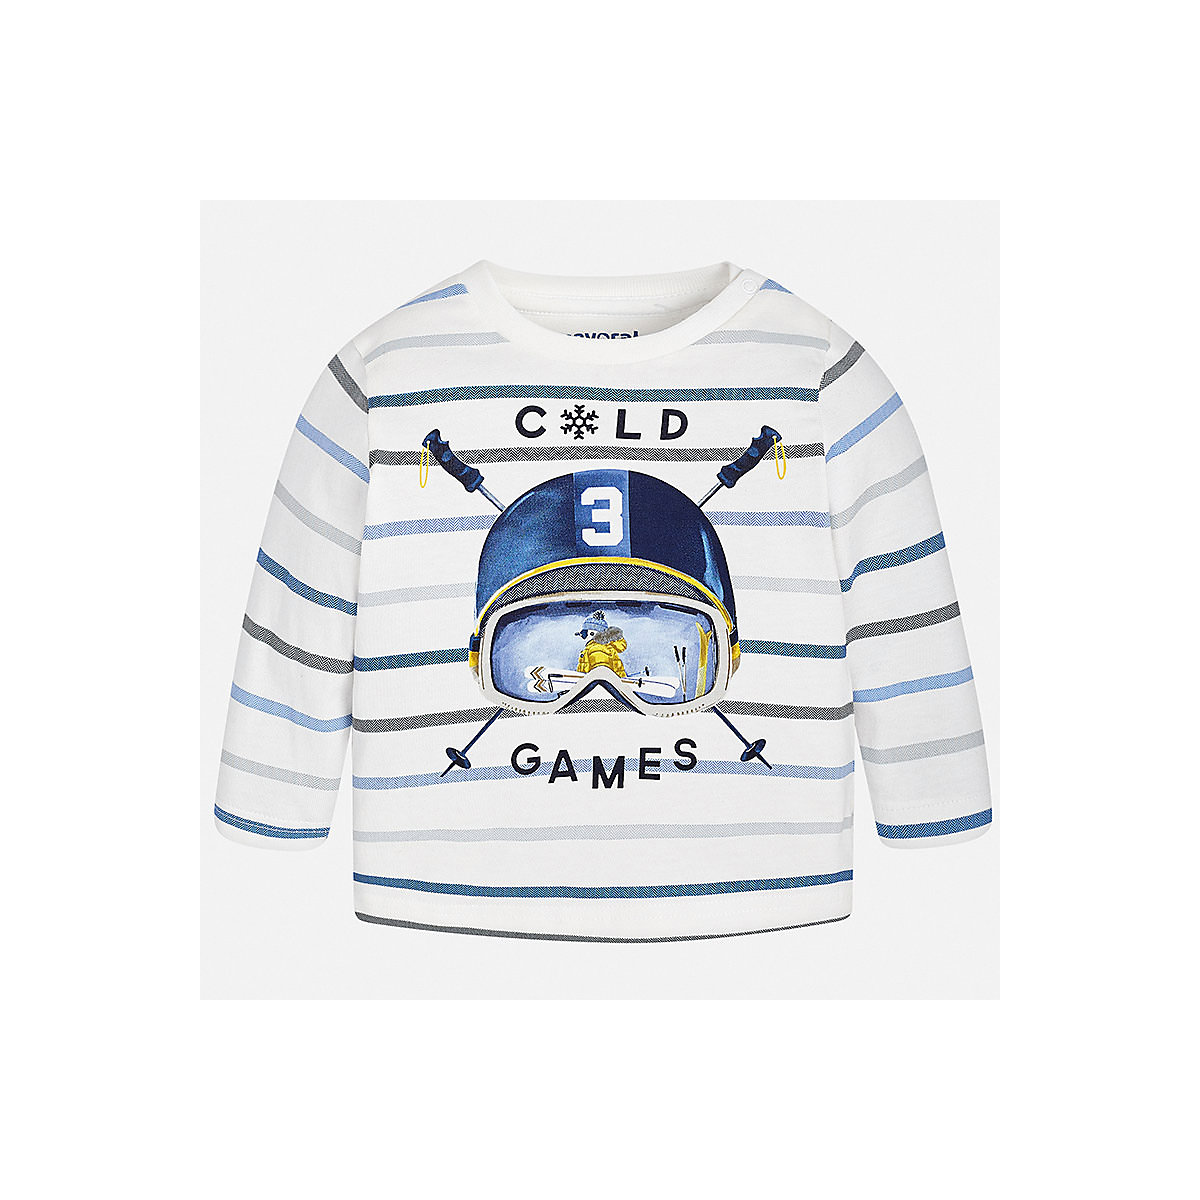 MAYORAL Blouses & Shirts 8849577 Boys Cotton  clothes baby boy children child wear mayoral blouses